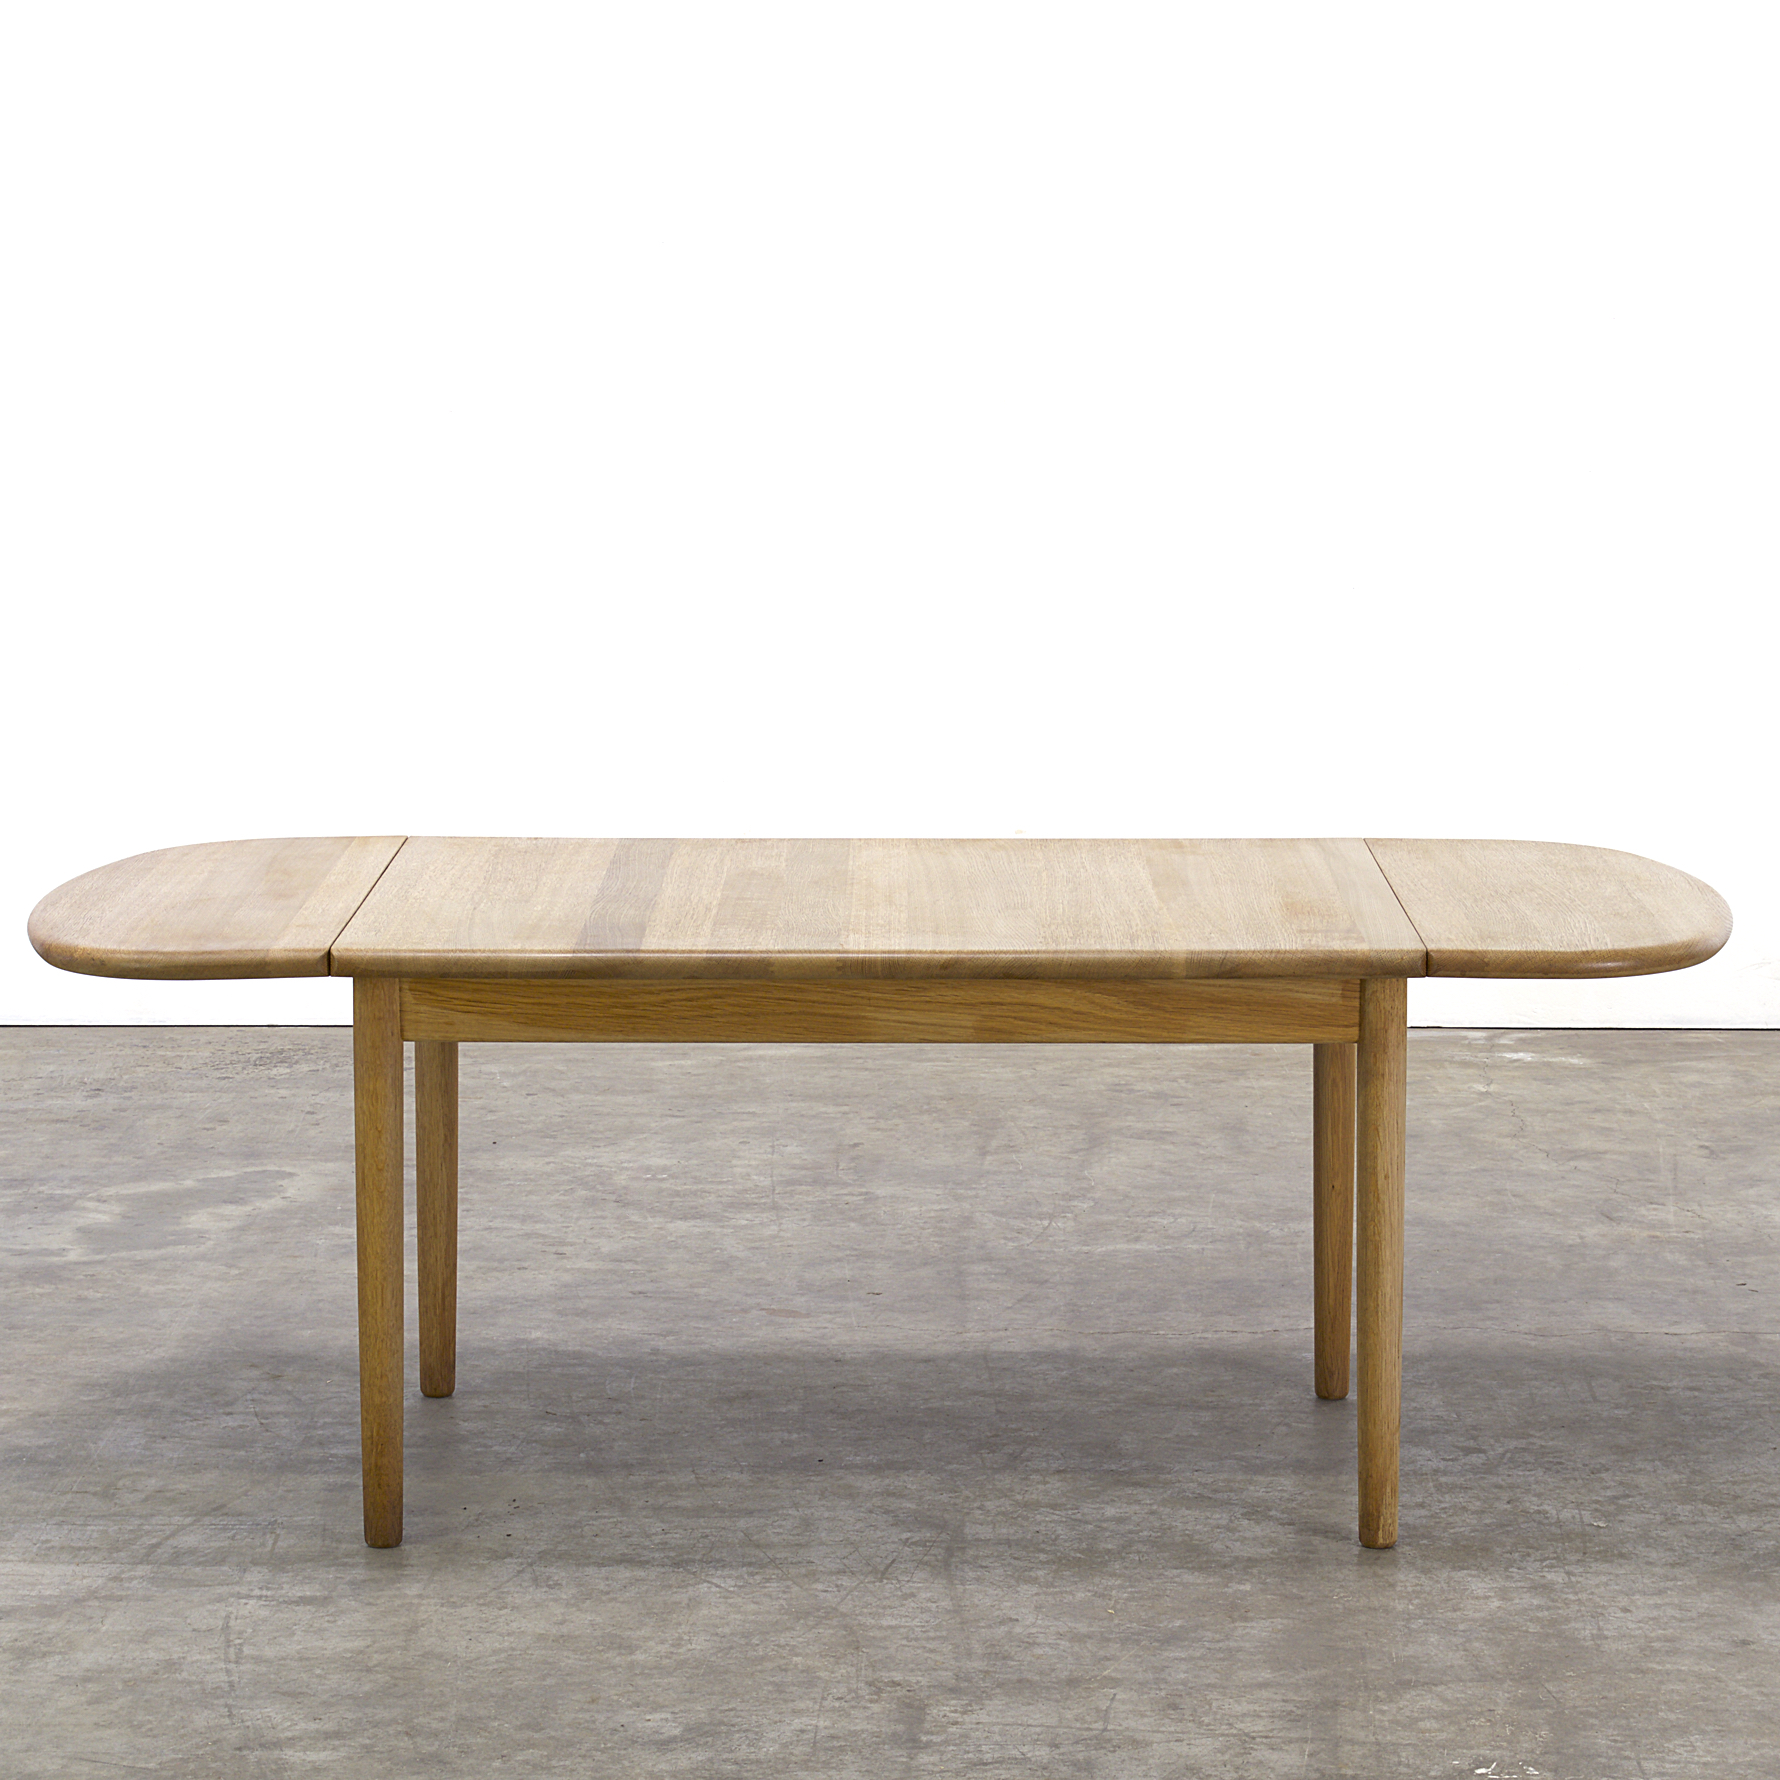 60s hans j wegner coffee table for getama denmark barbmama for 60s coffee table